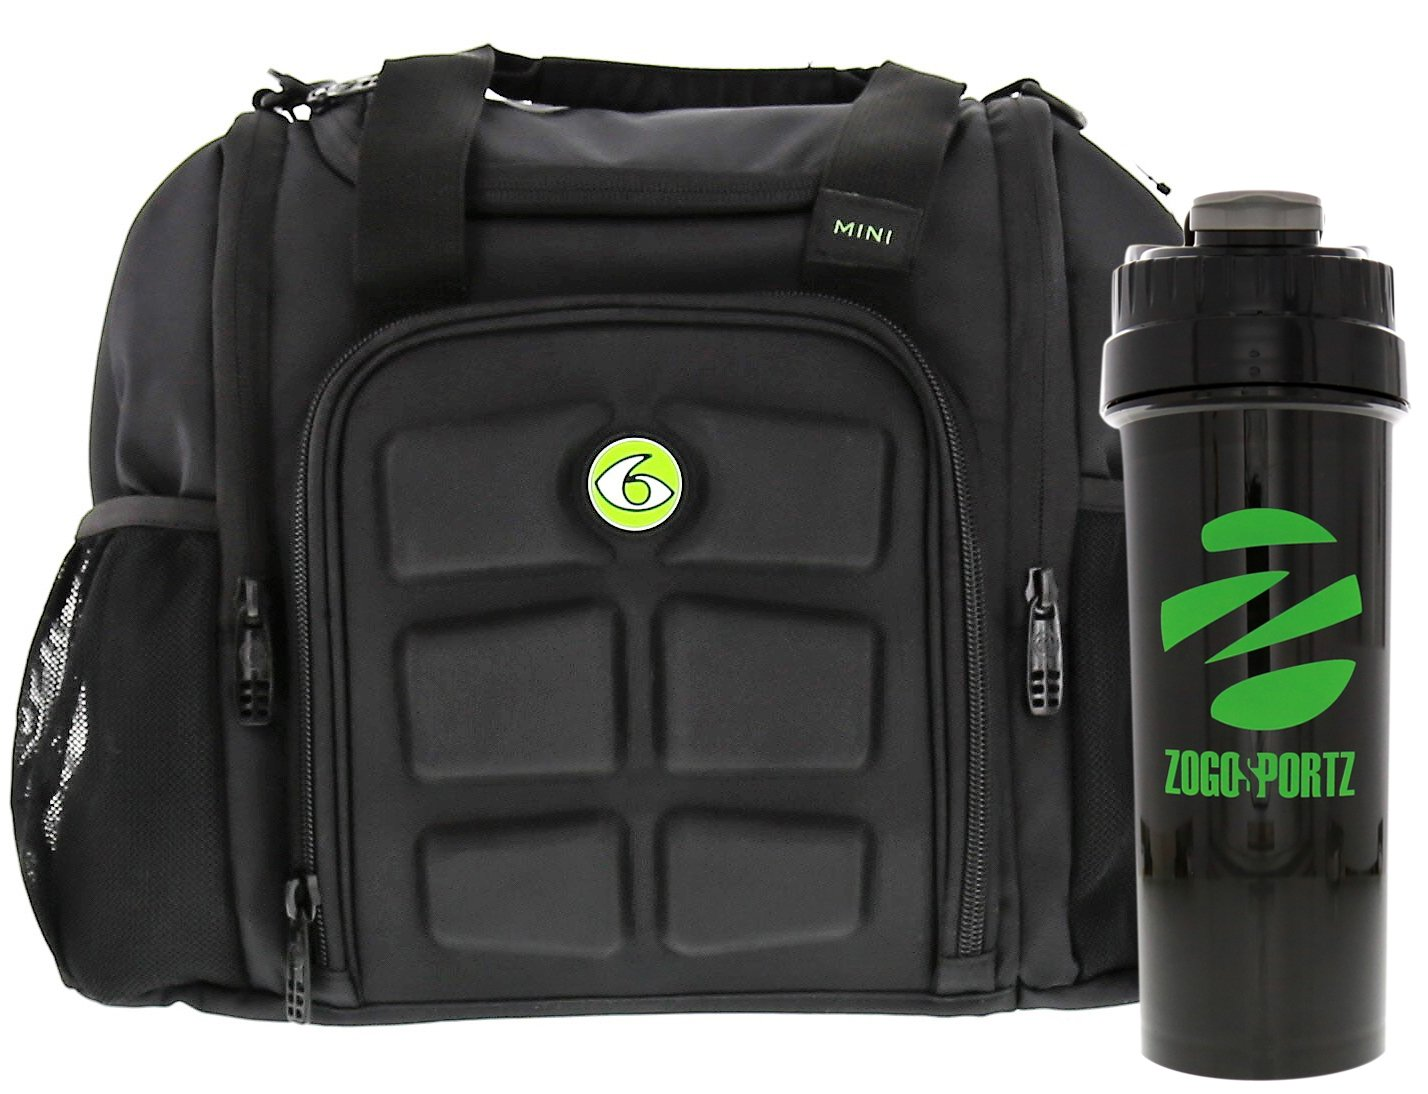 6 Pack Fitness Insulated Meal Prep Bag, Mini Innovator Black/Neon Green w/Bonus ZogoSportz Cyclone Shaker, Meal Prep Bag